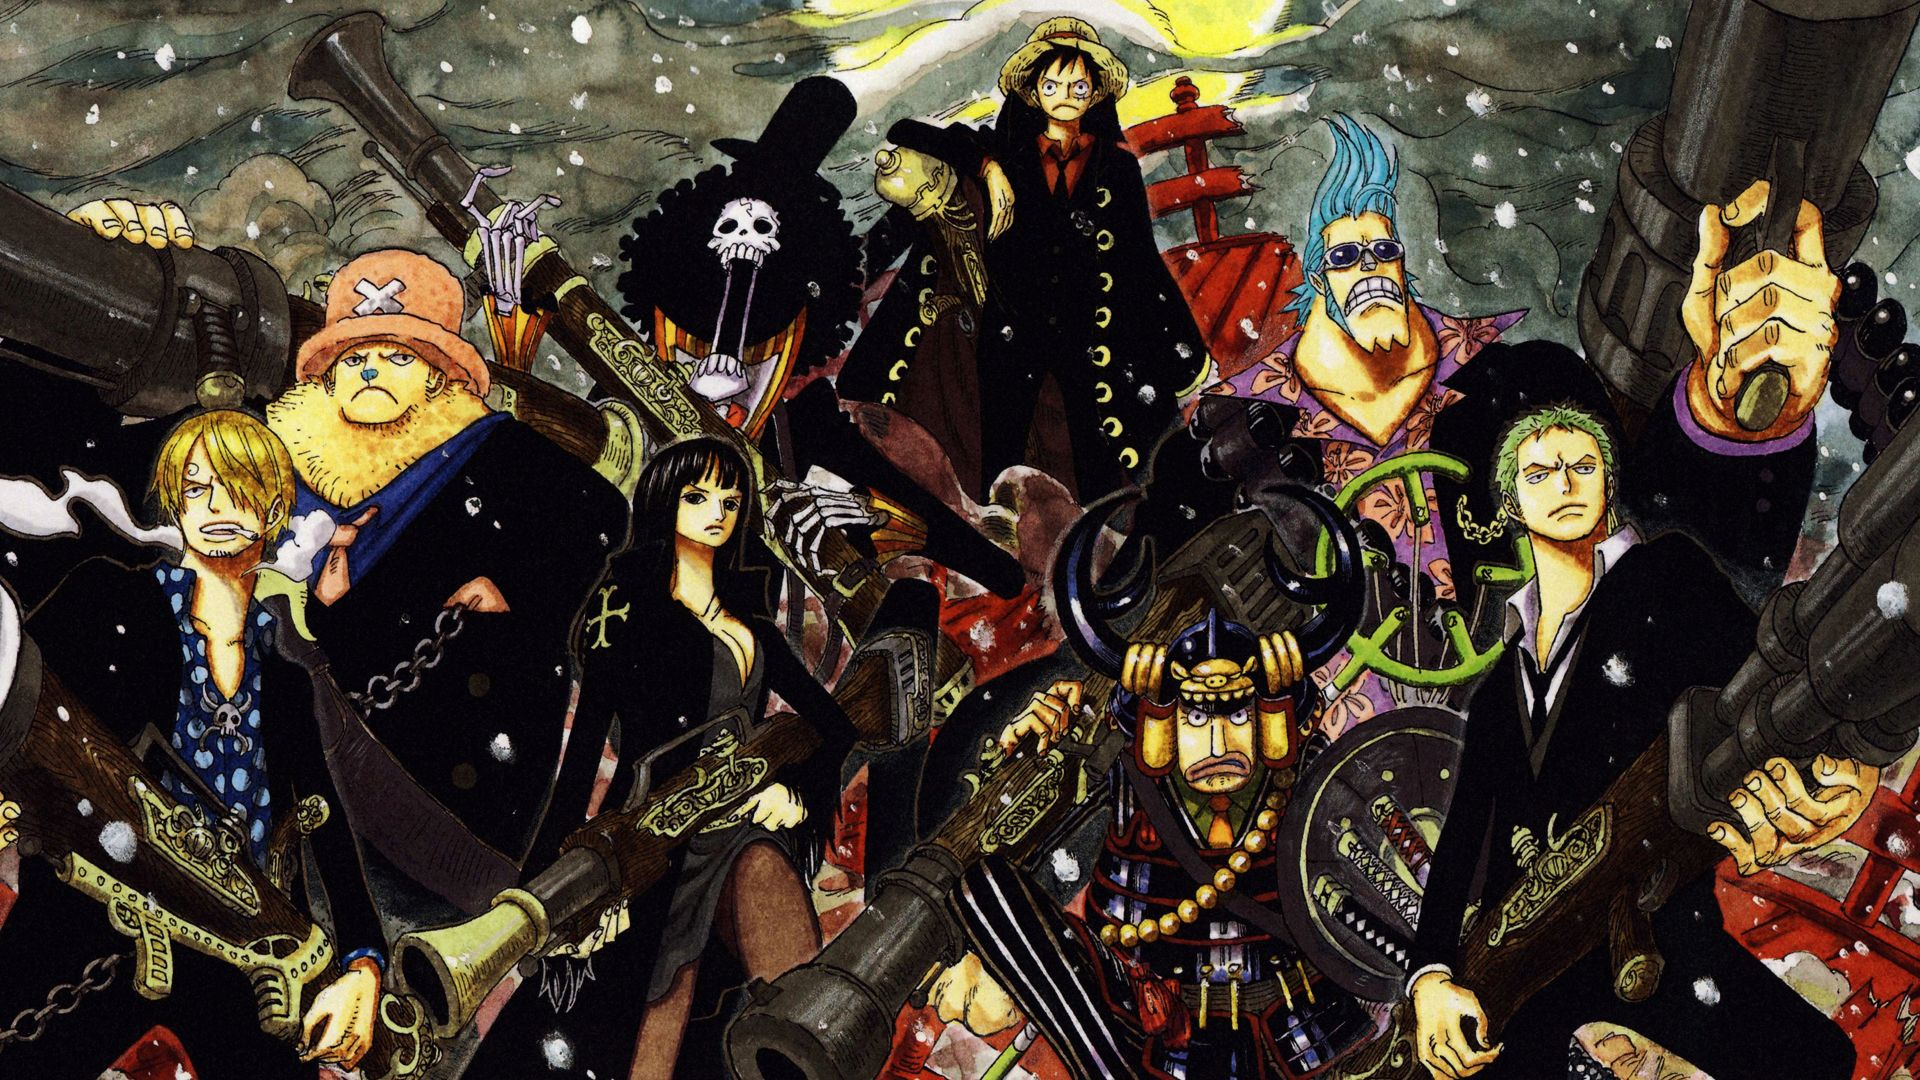 Awesome Wallpaper 2560X1440 One Piece Download